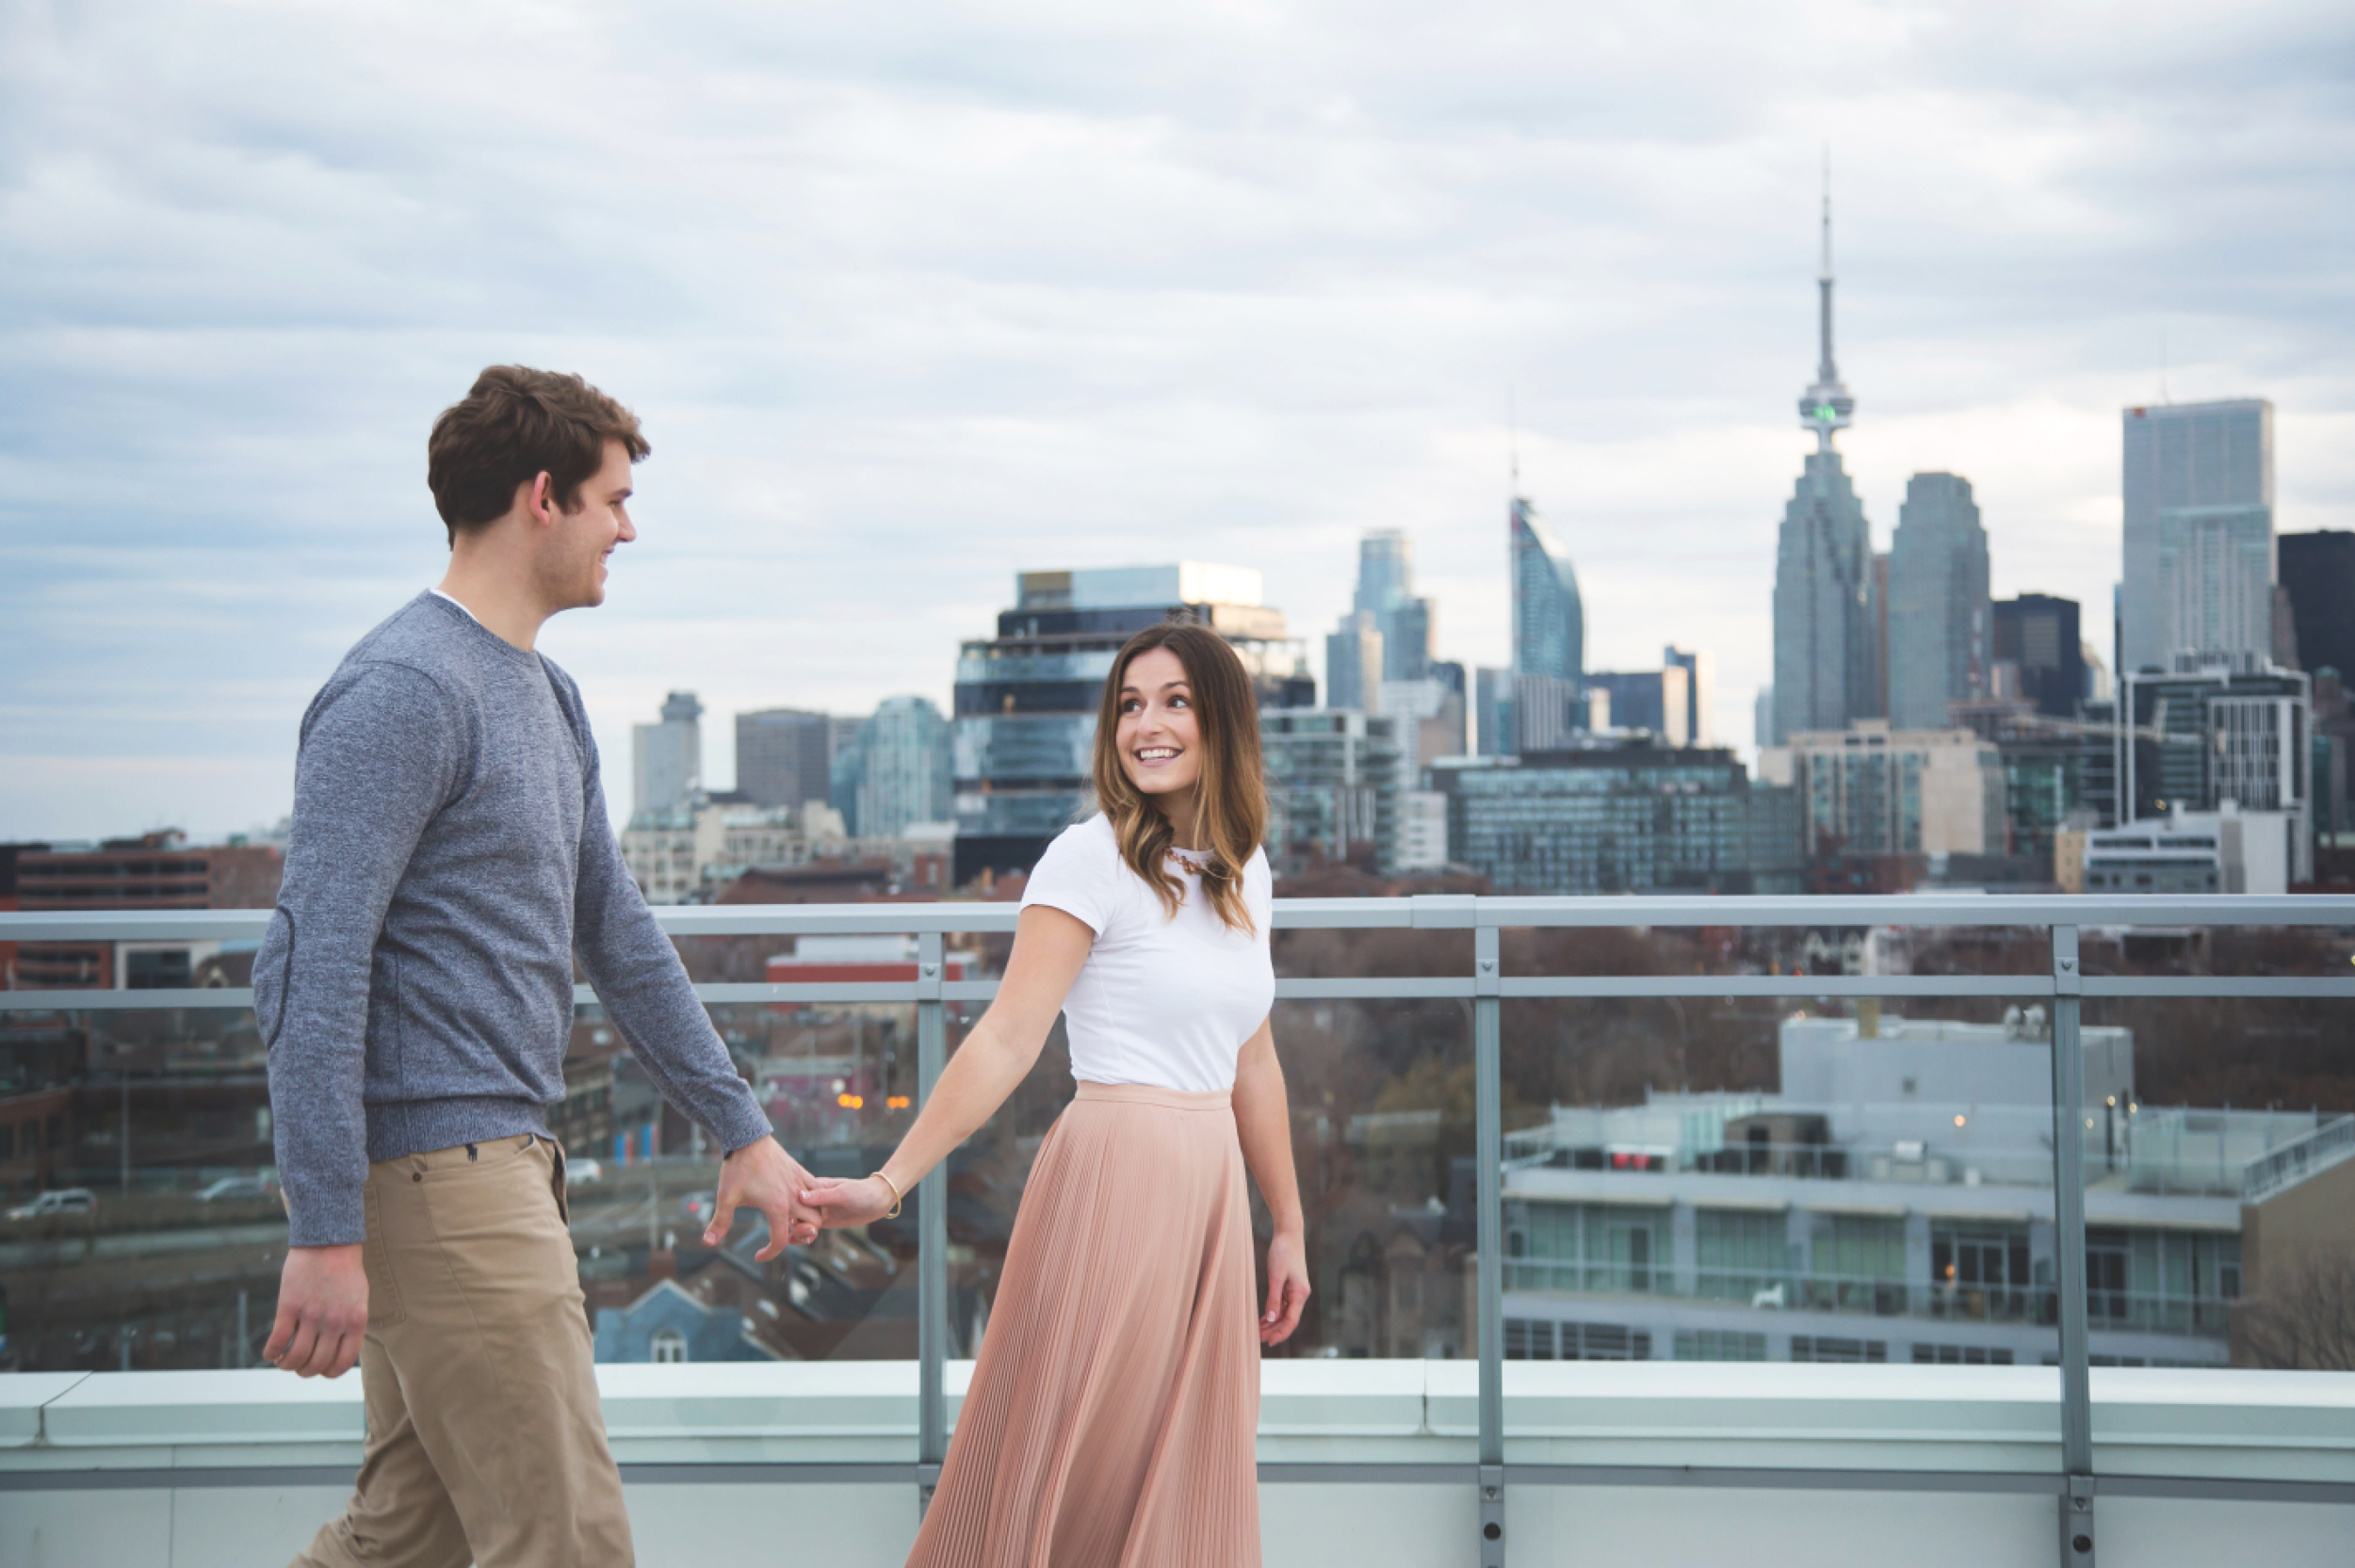 Engagement-Photos-Toronto-Corktown-Photographer-Wedding-Hamilton-GTA-Niagara-Oakville-Modern-Moments-by-Lauren-Engaged-Image-Photo16.png